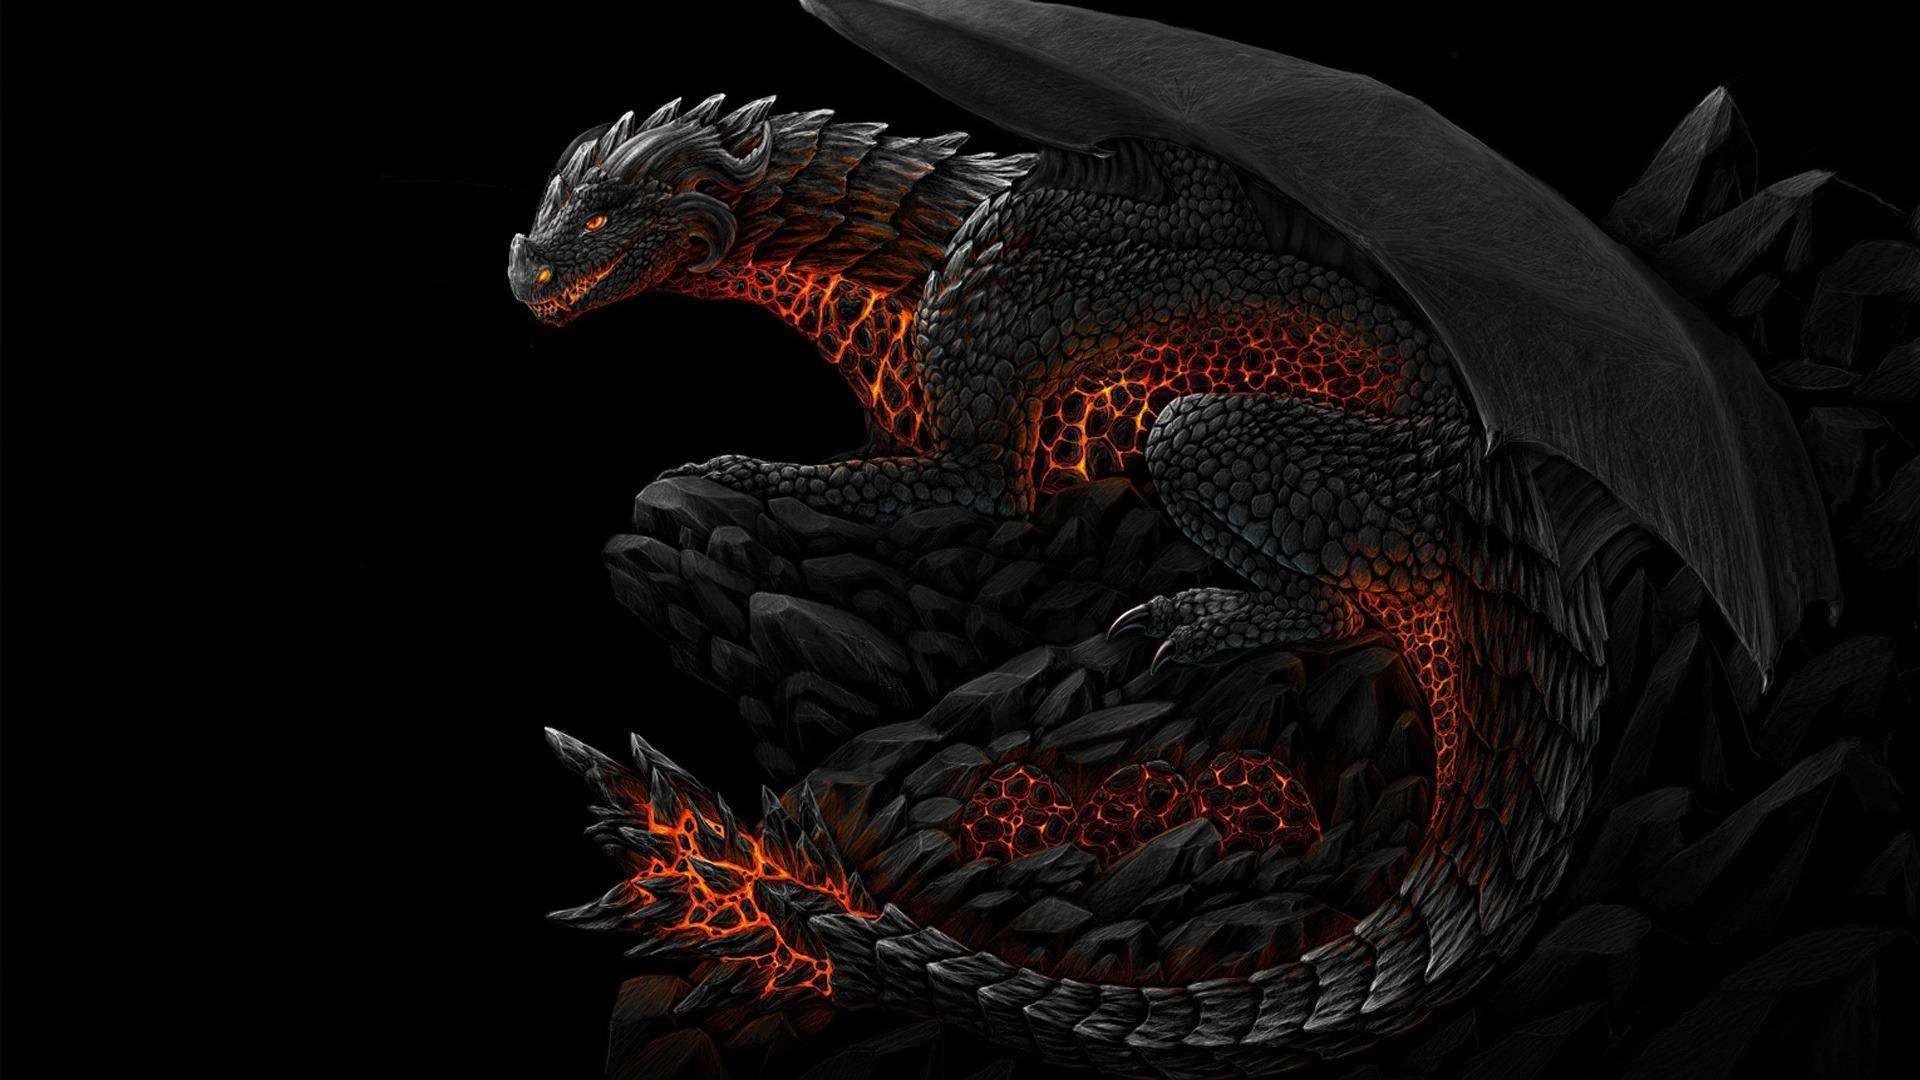 dragon wallpaper widescreen high resolution - photo #45